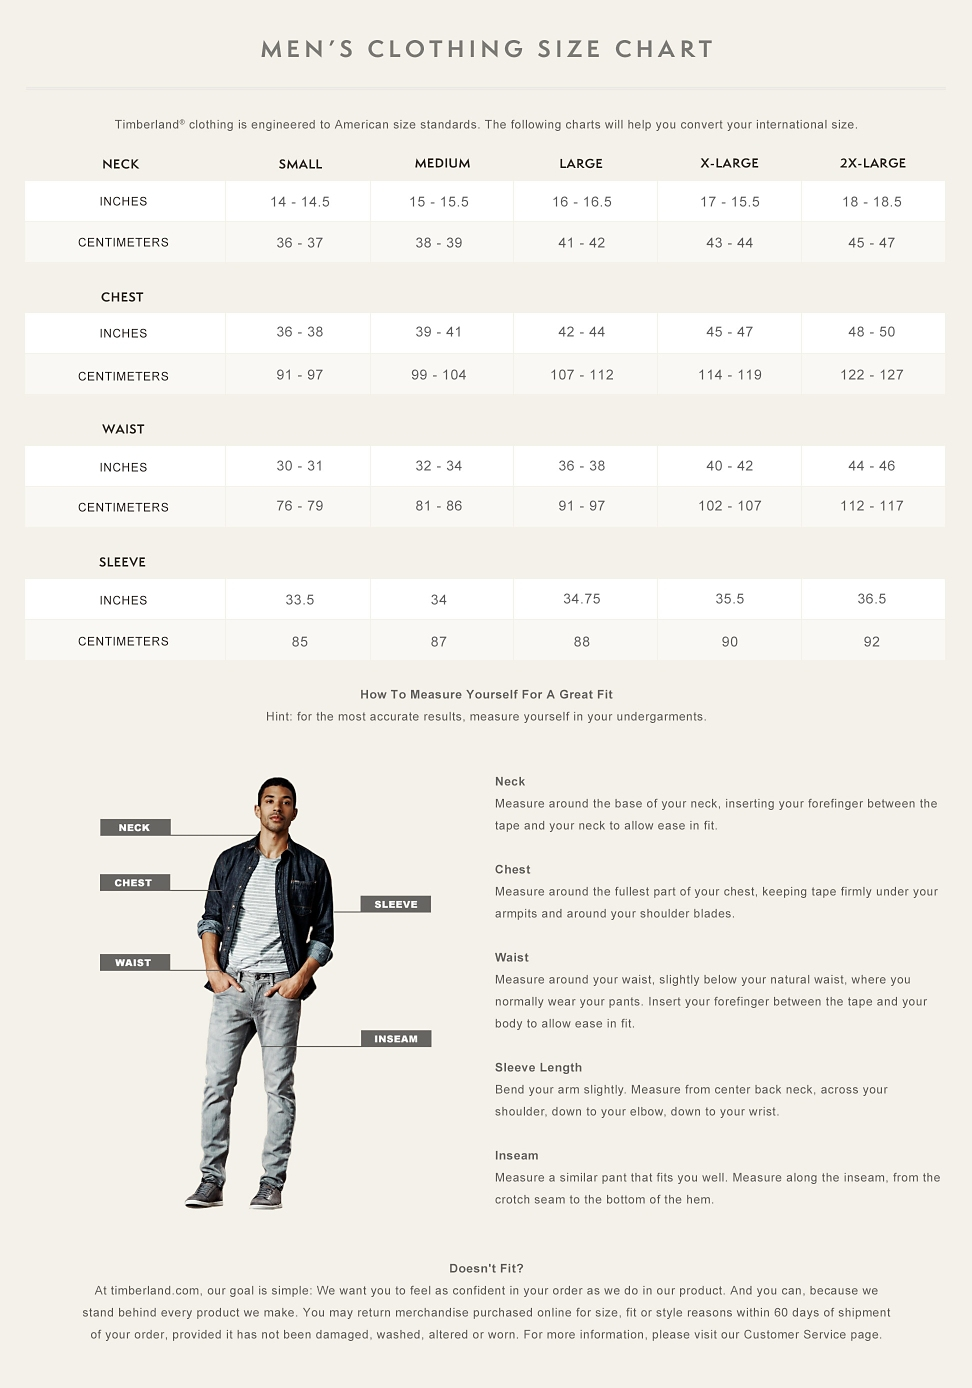 Mens clothing size chart timberland mens clothing size chart nvjuhfo Choice Image